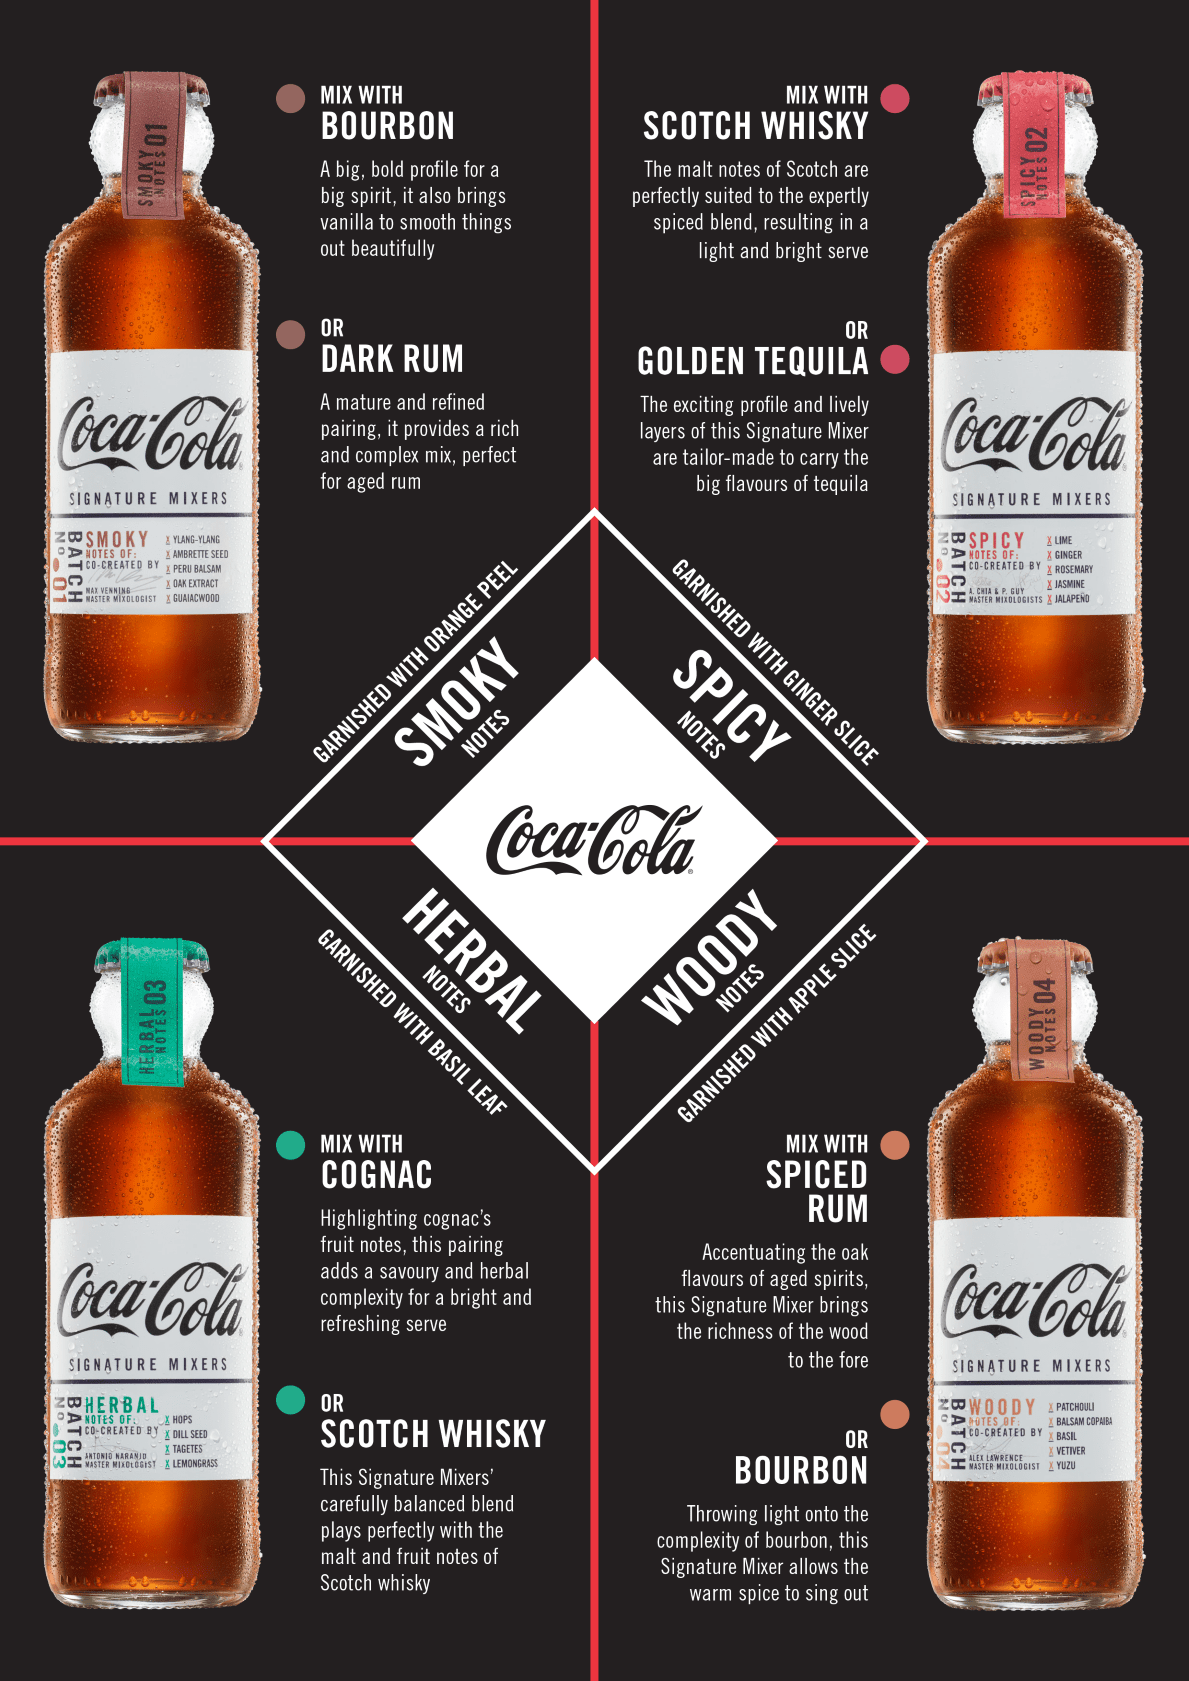 An infographic explaining the differences between each of the Coca-Cola Signature Mixers